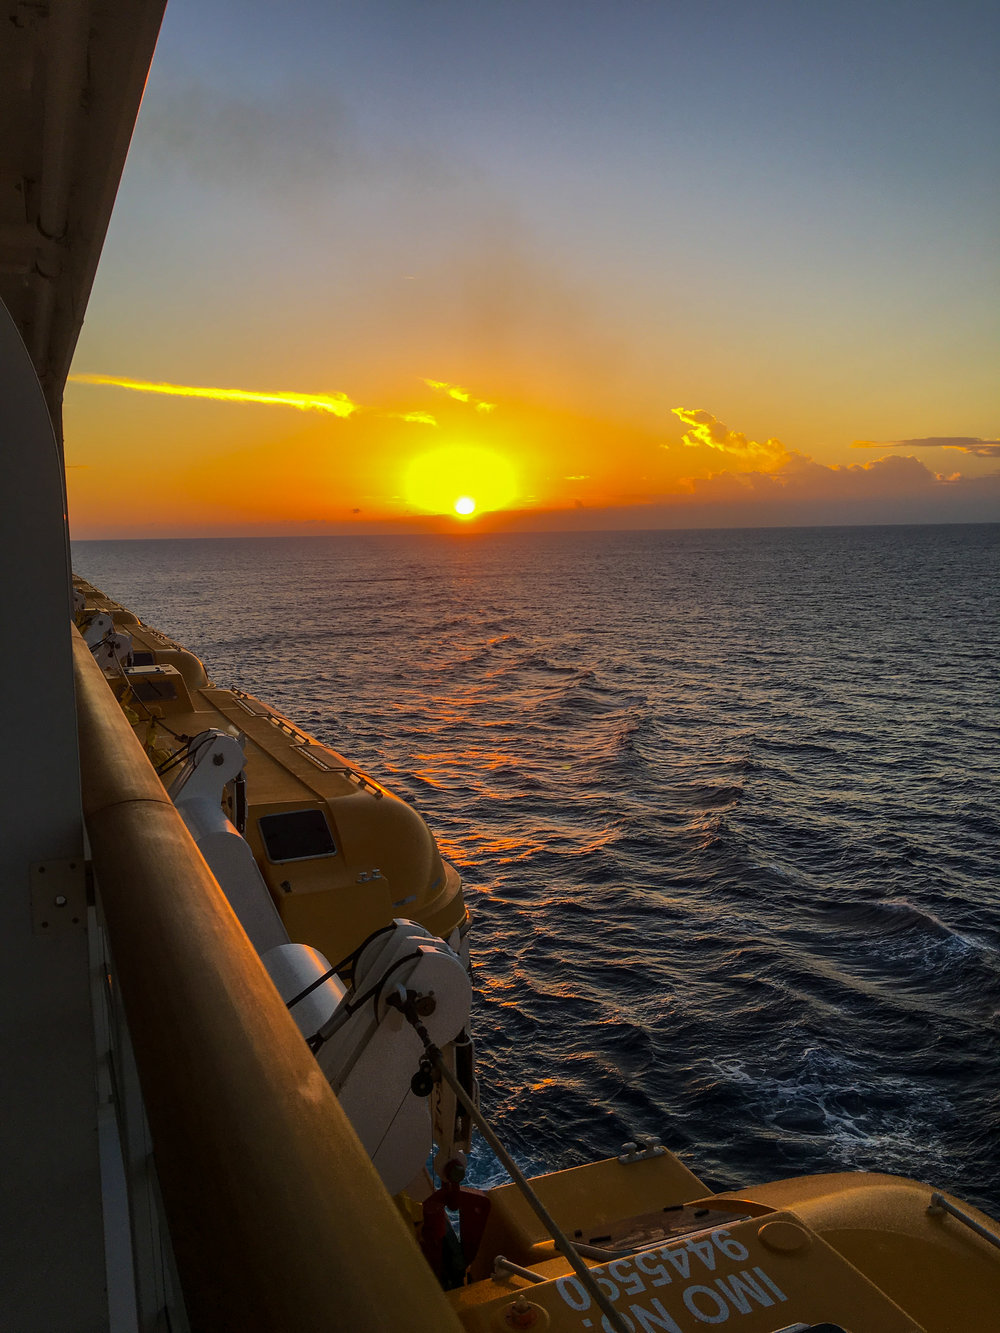 Sunset on the Caribbean.